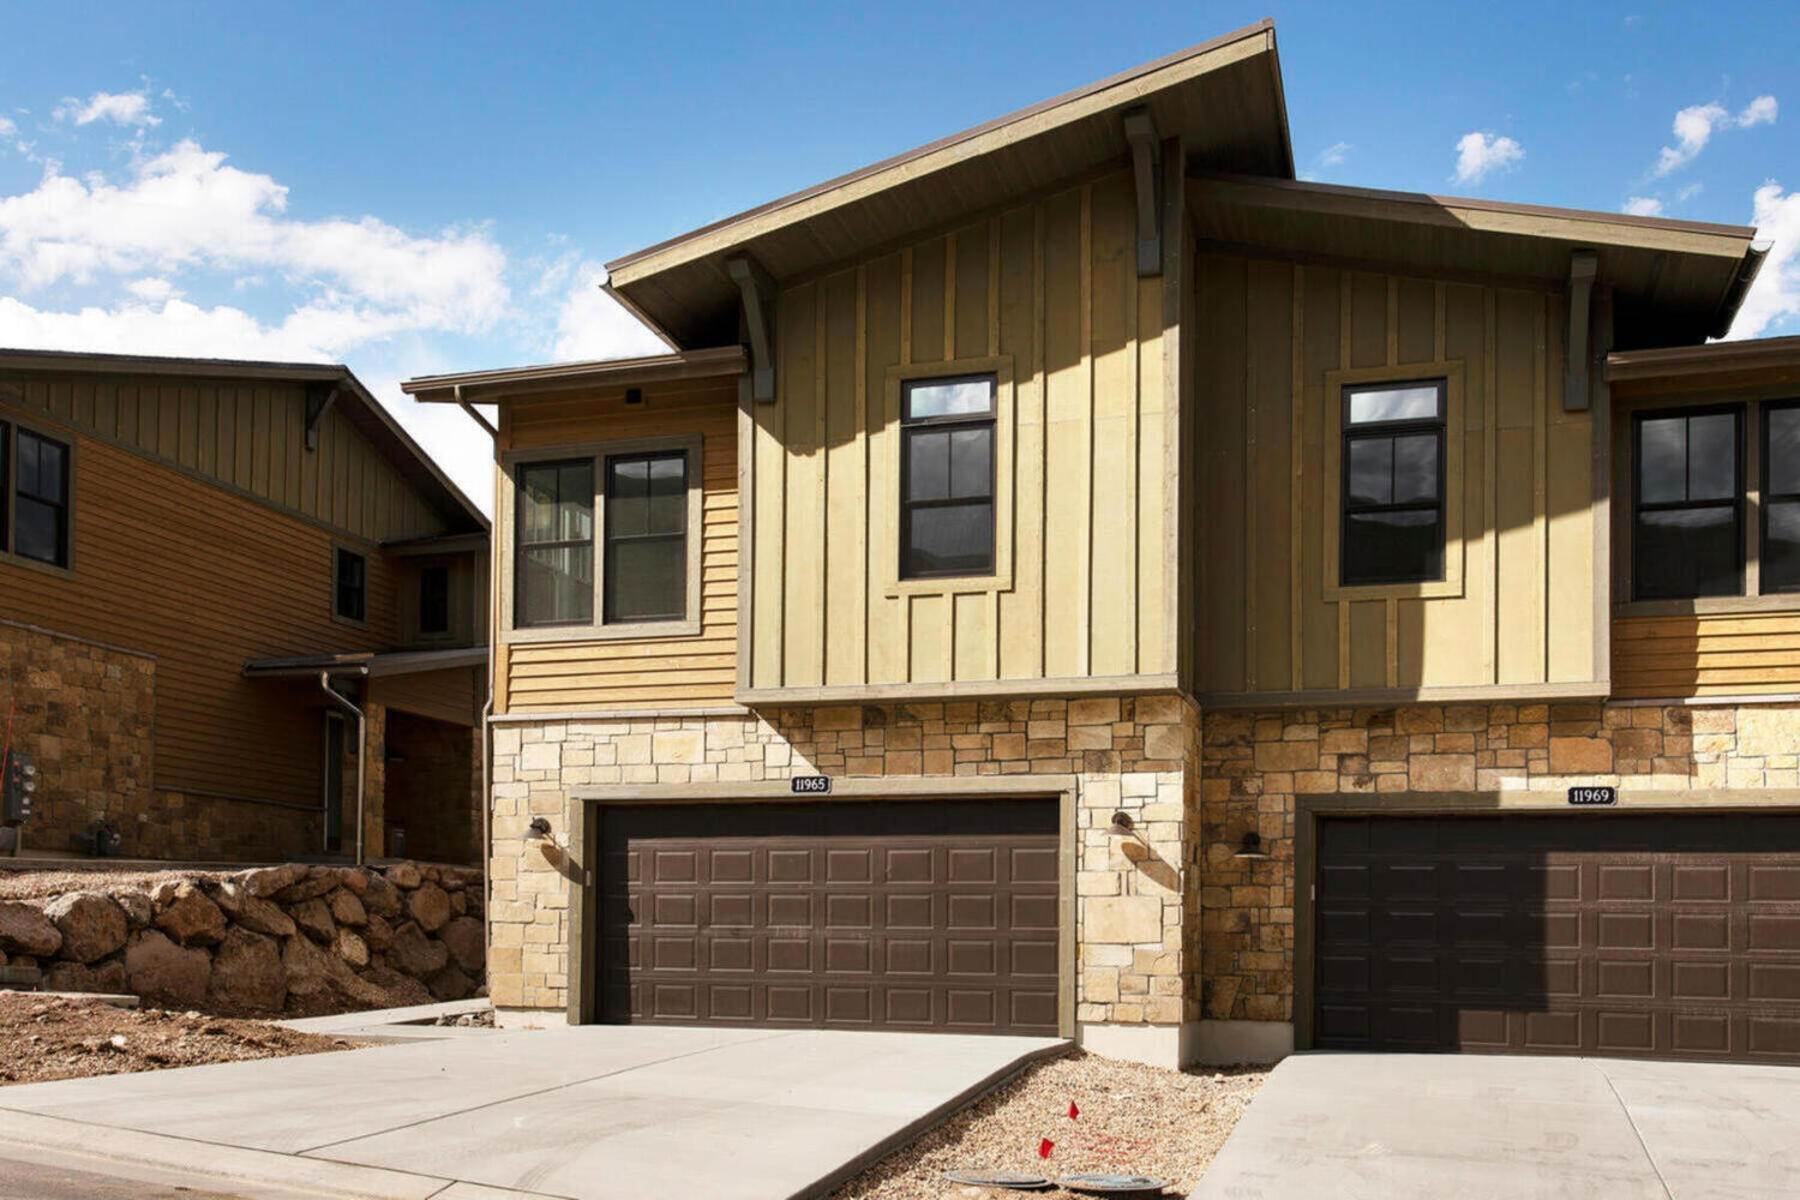 townhouses for Sale at New Lakefront Community with Views of Deer Valley Resort & Jordanelle Reservoir 11853 N Shoreline Drive, Lot #5 Hideout Canyon, Utah 84036 United States